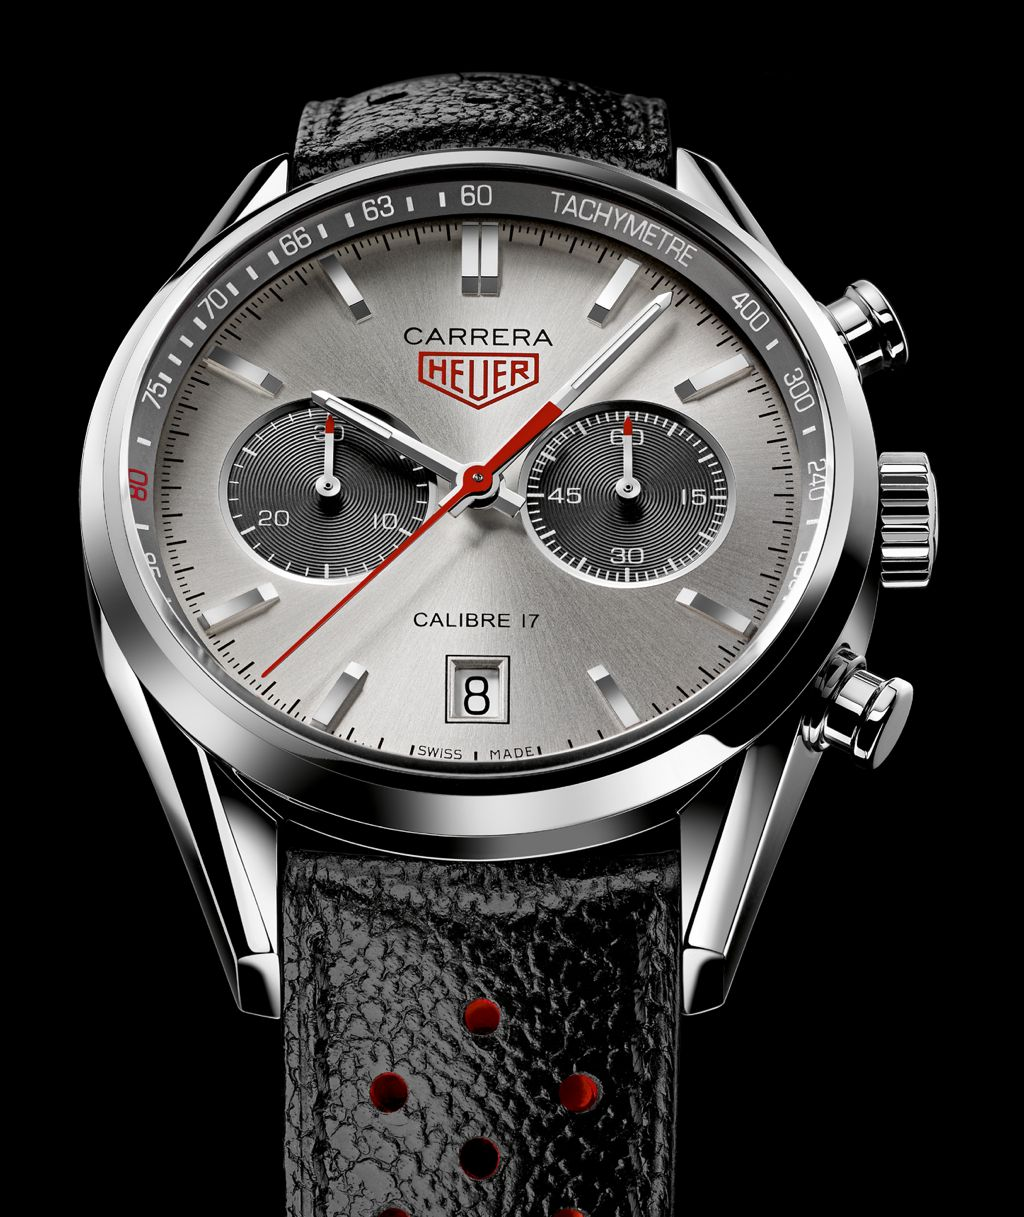 Tag: Carrera Jack Heuer 80th Birthday Edition